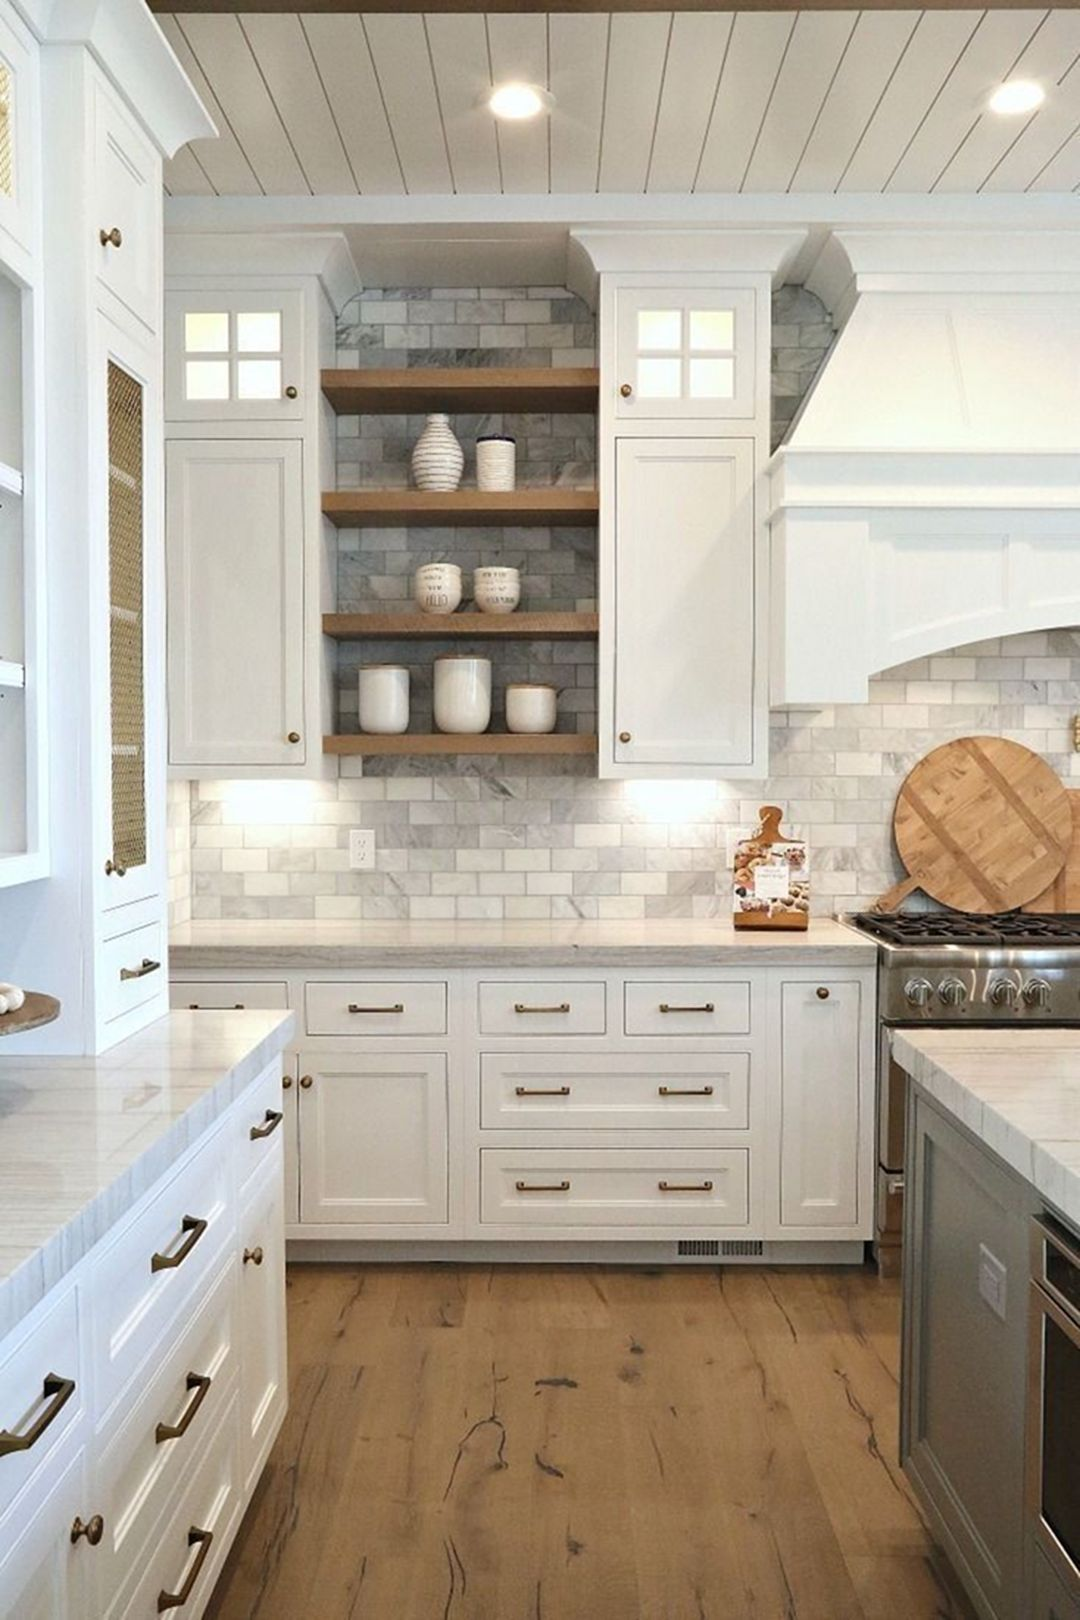 15 Chic Farmhouse Kitchen Design And Decorating Ideas For Fun Cooking Decor It S In 2020 Kitchen Cabinet Design Home Decor Kitchen Kitchen Design